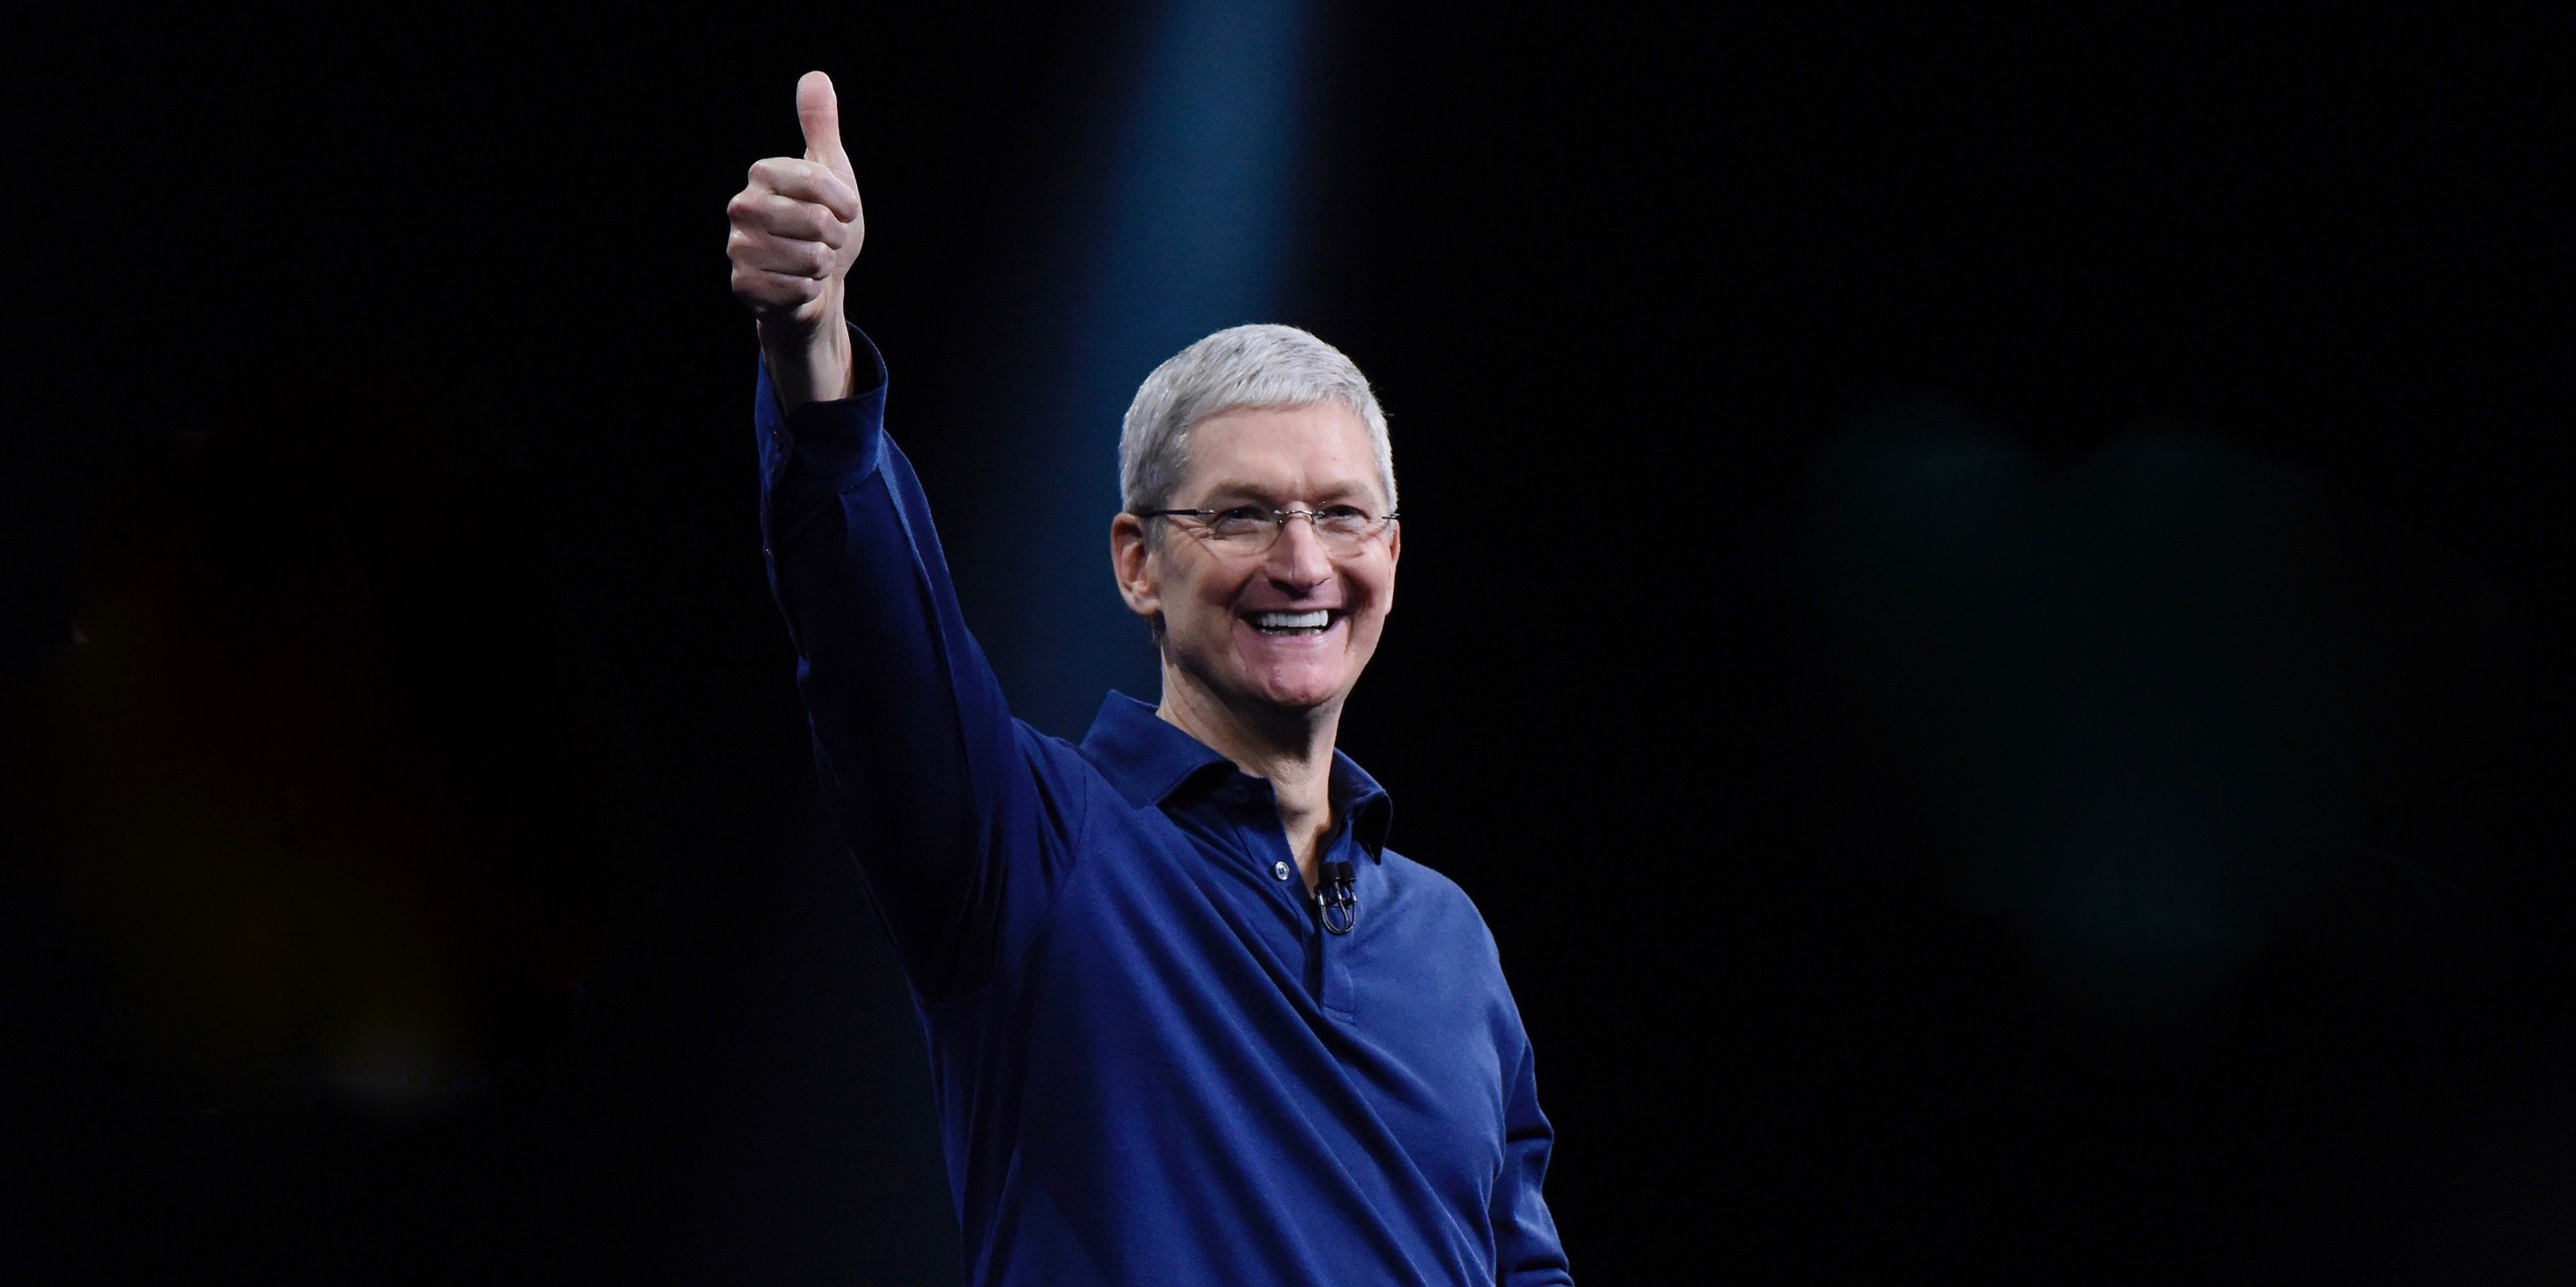 https://i0.wp.com/9to5mac.com/wp-content/uploads/sites/6/2019/04/tim-cook-thumbs-up-smile.jpeg?resize=1500%2C0&quality=82&strip=all&ssl=1